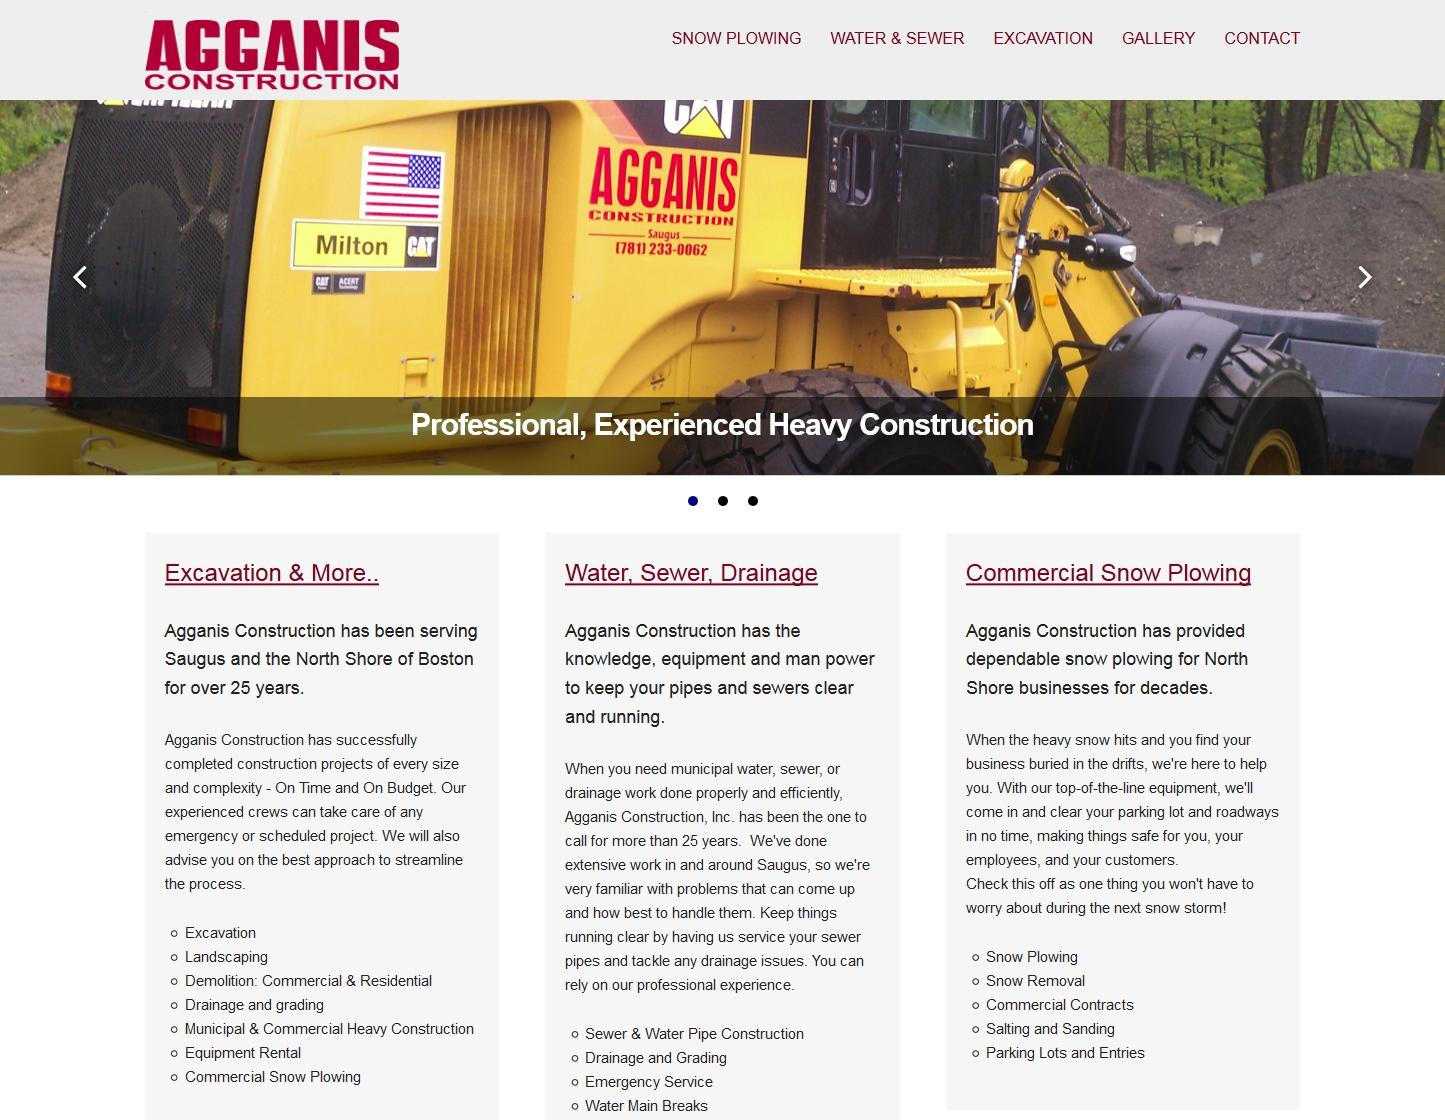 AGGANIS CONSTRUCTION